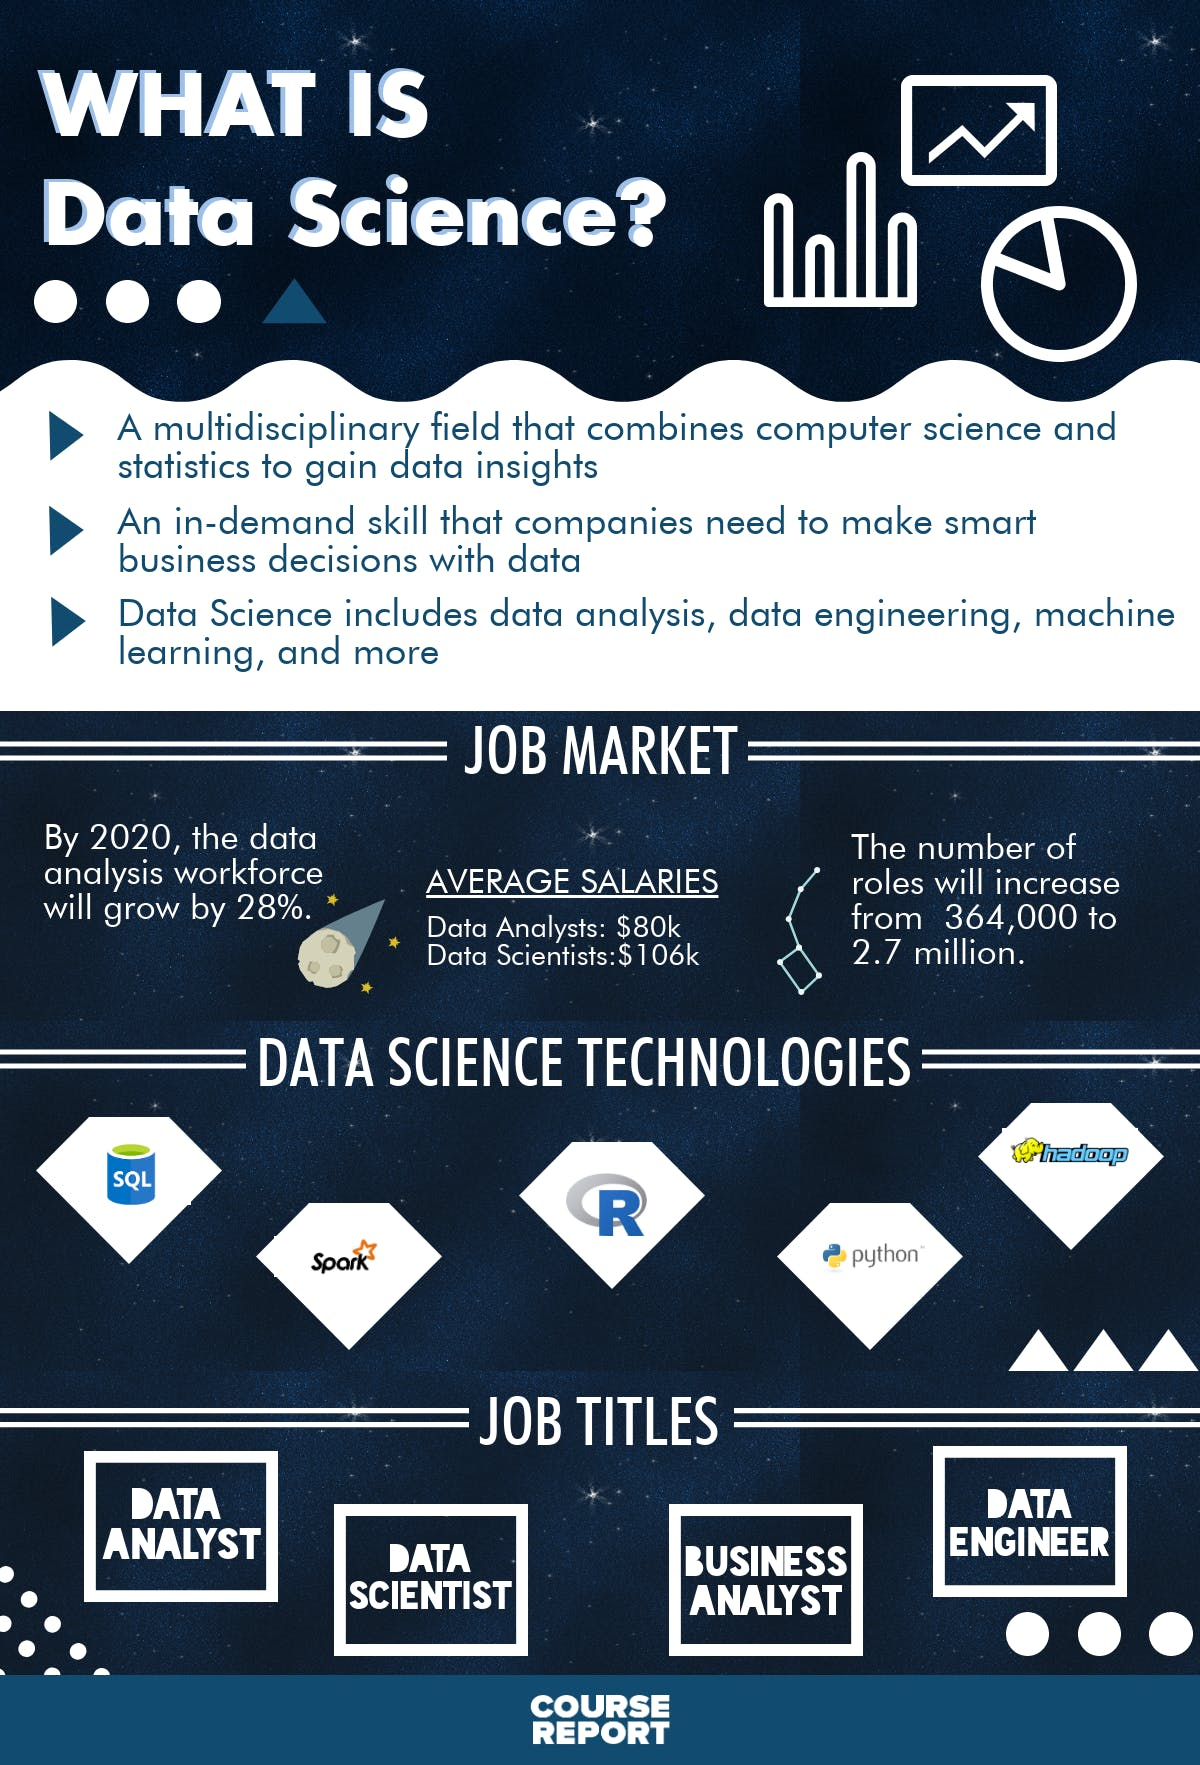 Data science ultimate guide infographic